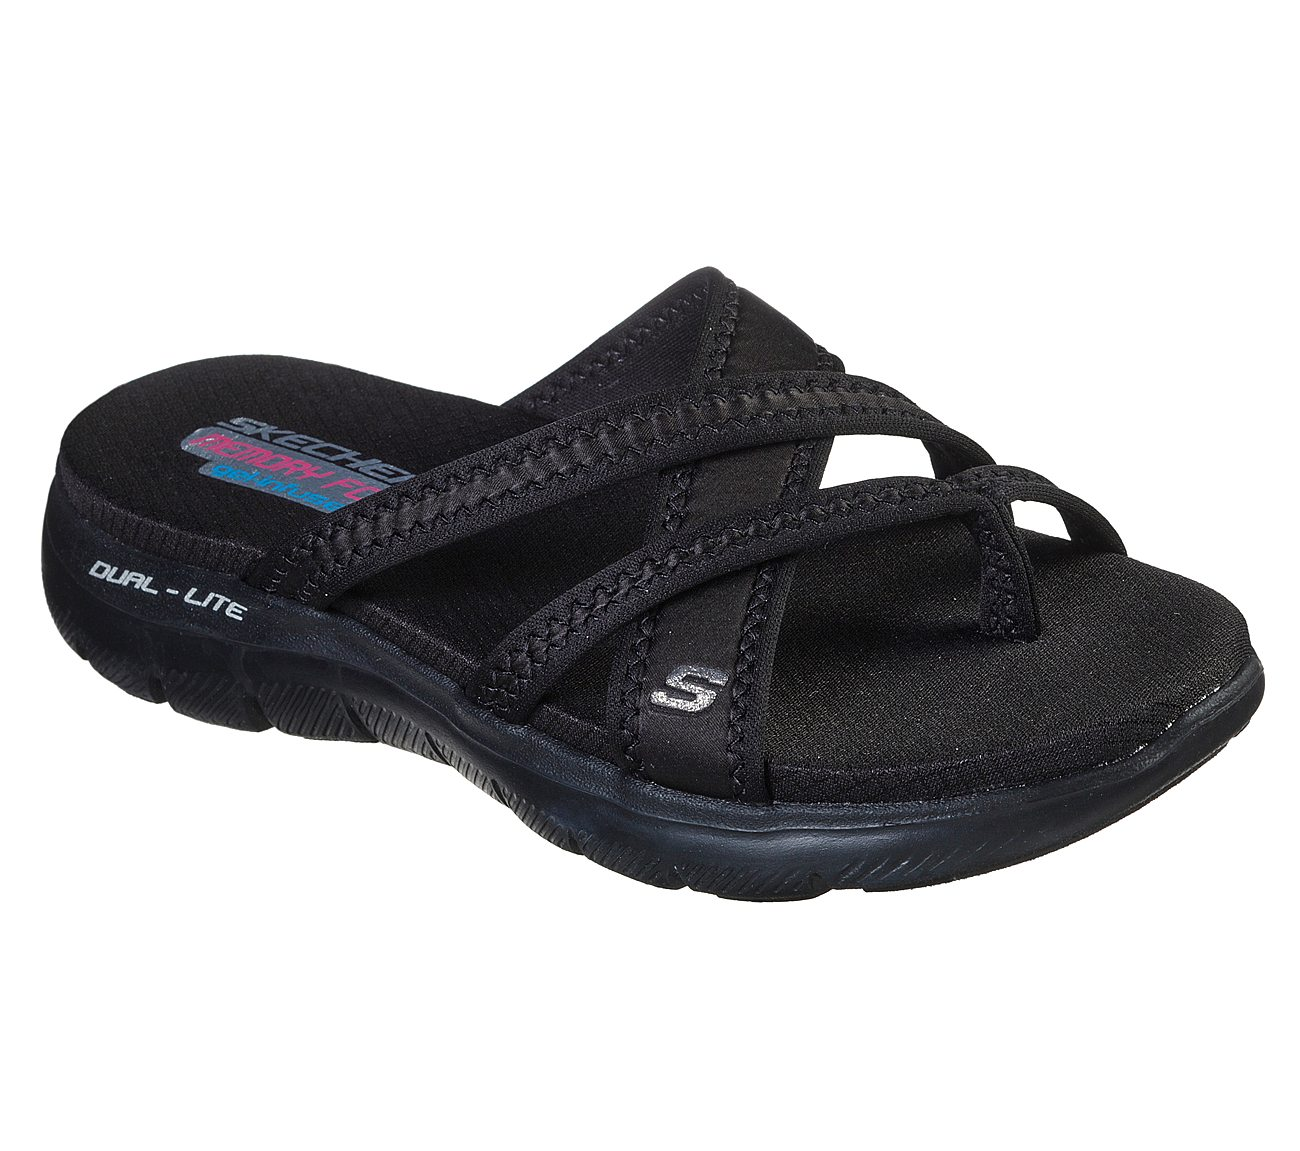 2766c7b848e6 Buy SKECHERS Flex Appeal 2.0 - Start Up Cali Shoes only  35.00